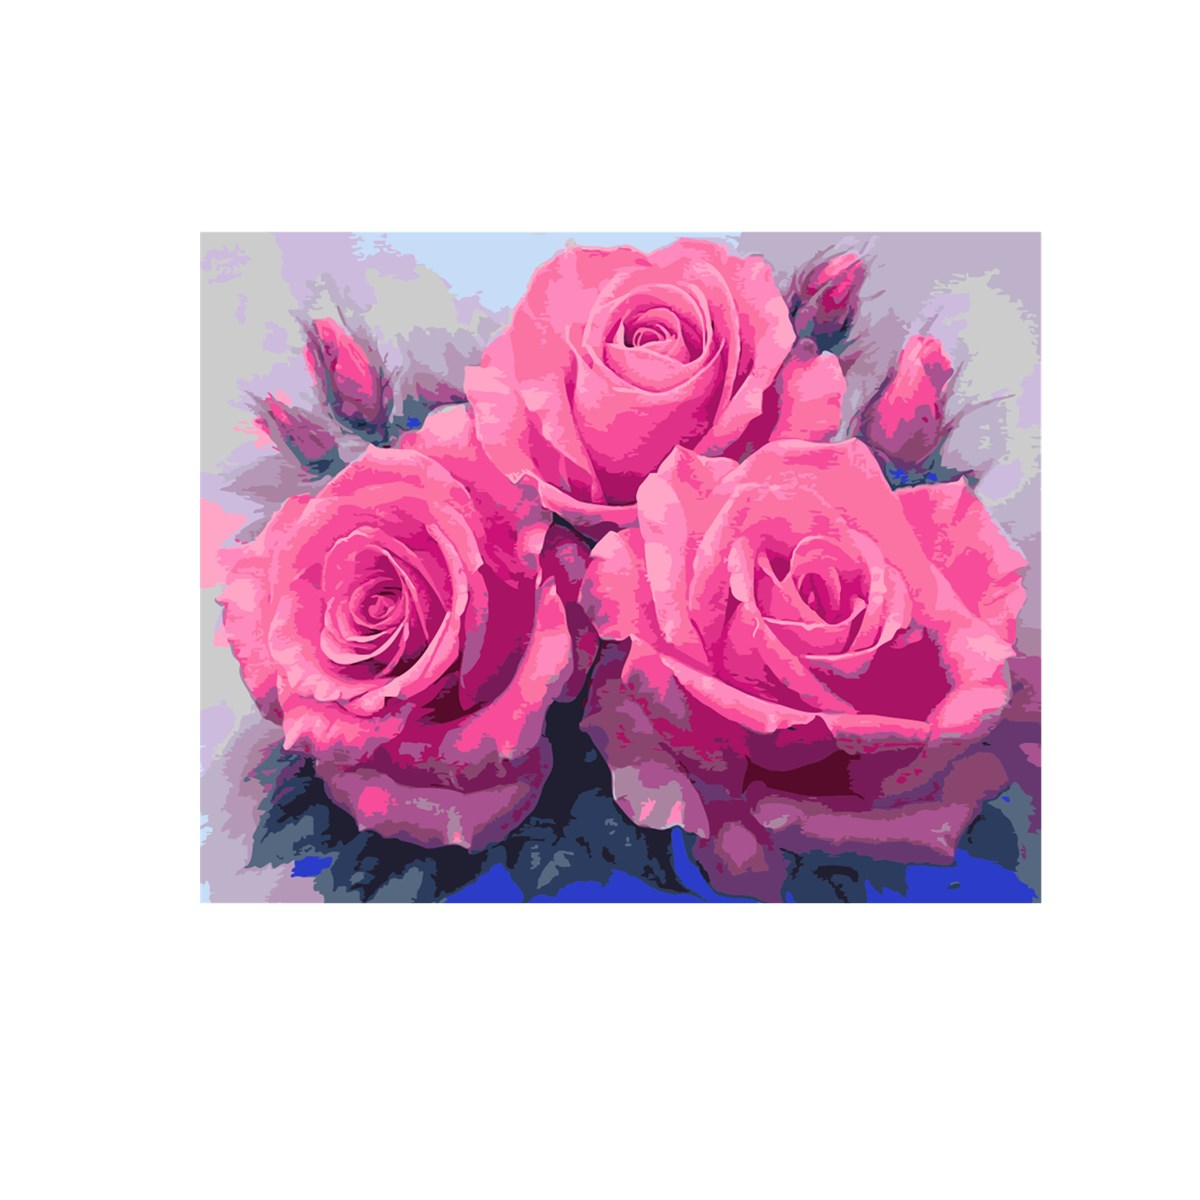 details about pink rose